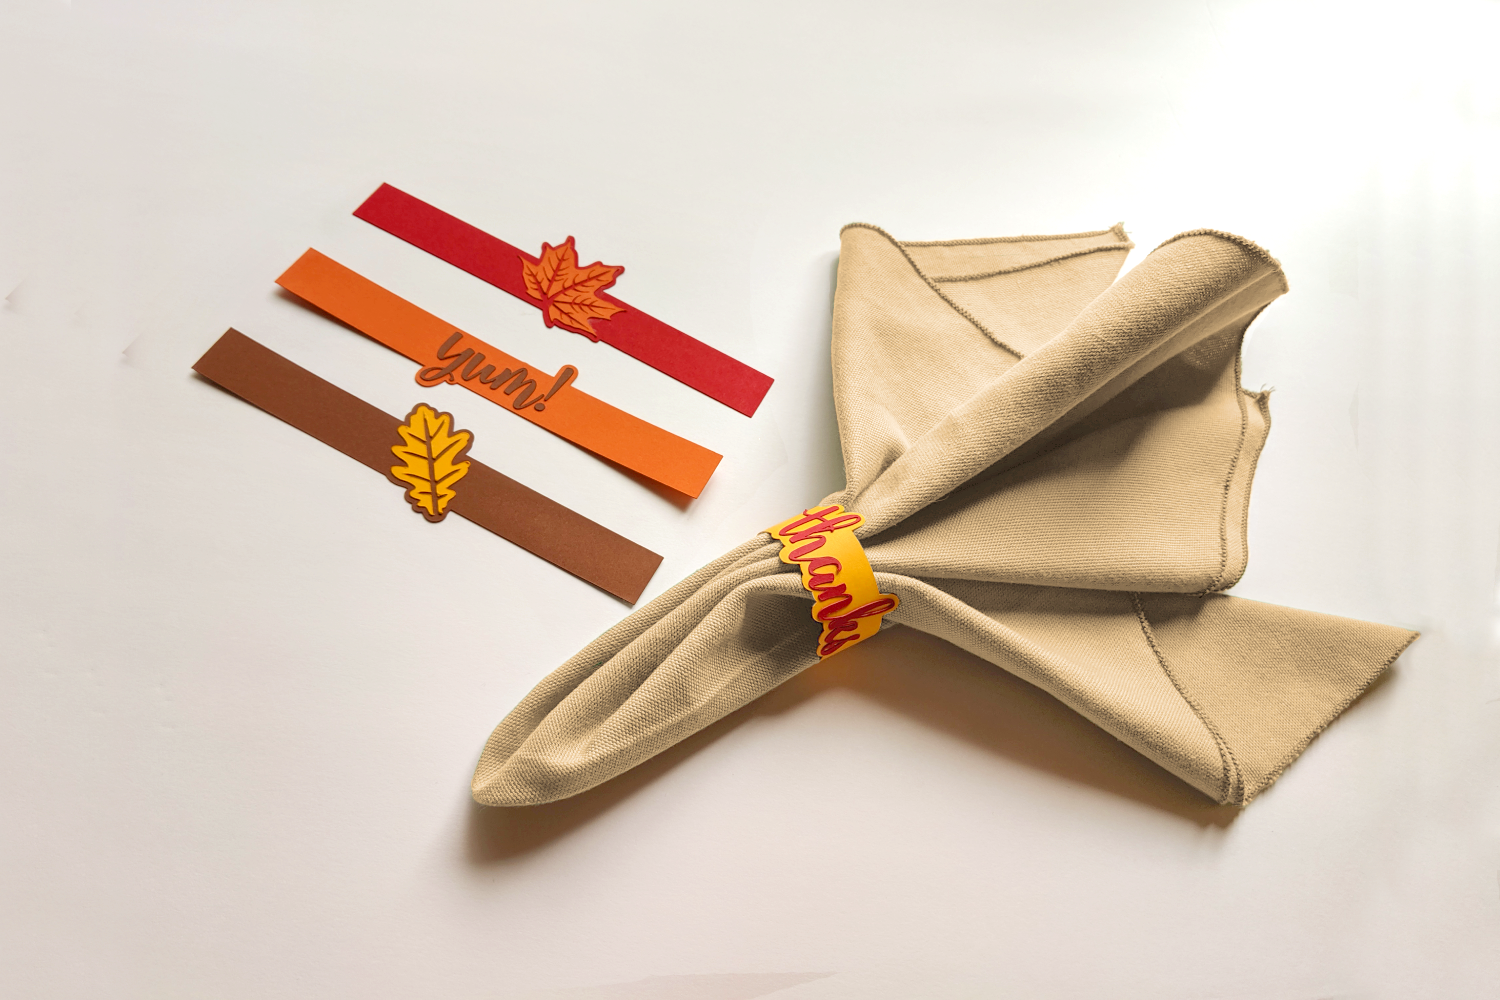 Thanksgiving Napkin Ring Set Svg Png Dxf By Designed By Geeks Thehungryjpeg Com